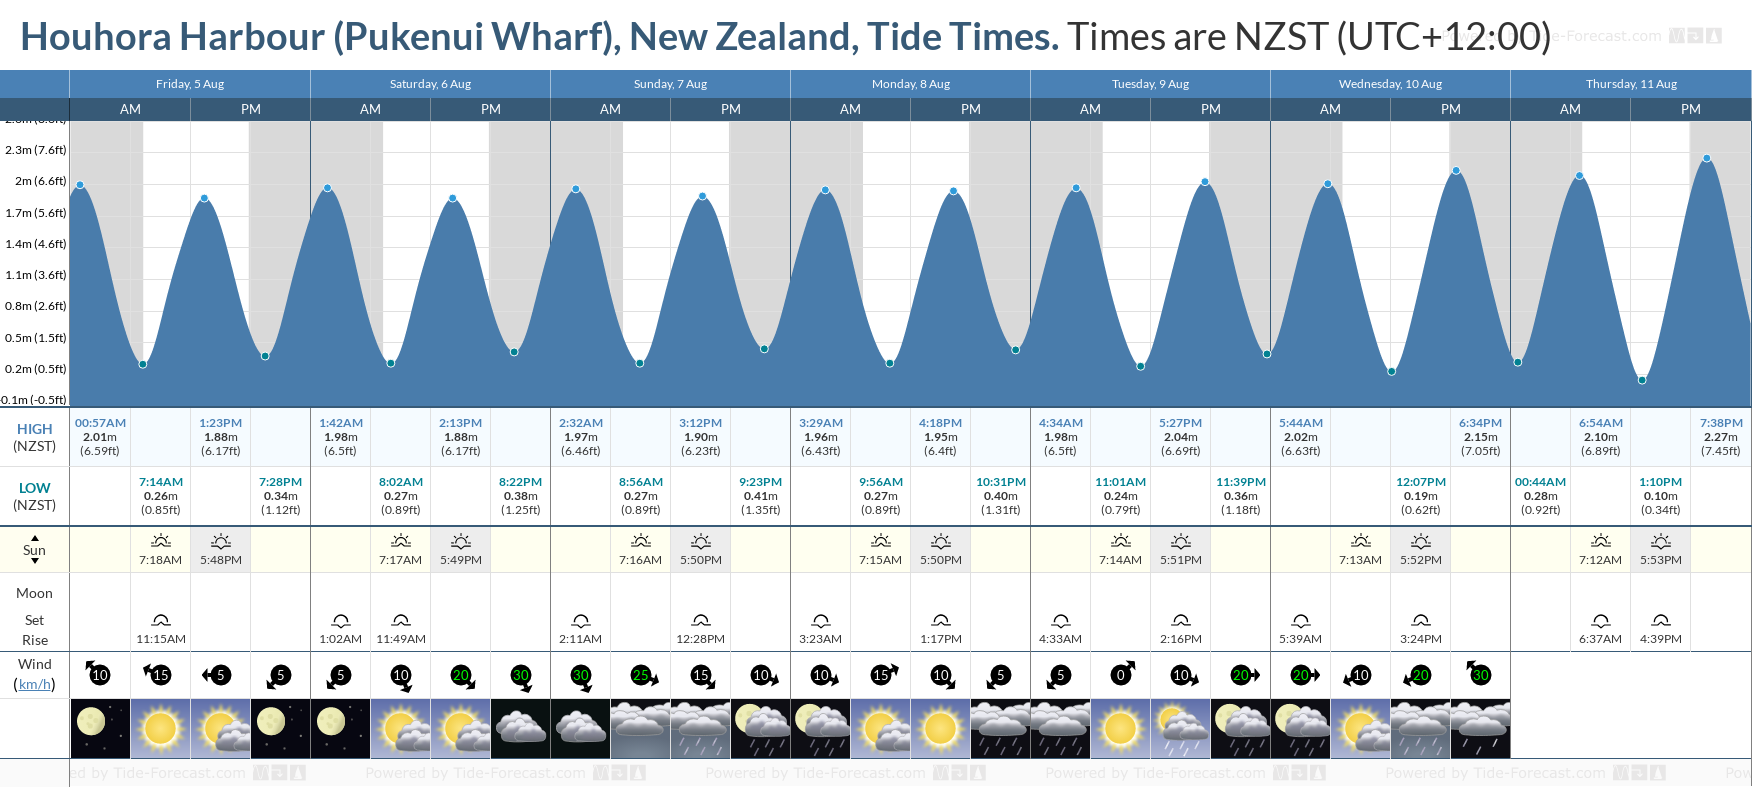 Houhora Harbour (Pukenui Wharf), New Zealand Tide Chart including high and low tide tide times for the next 7 days